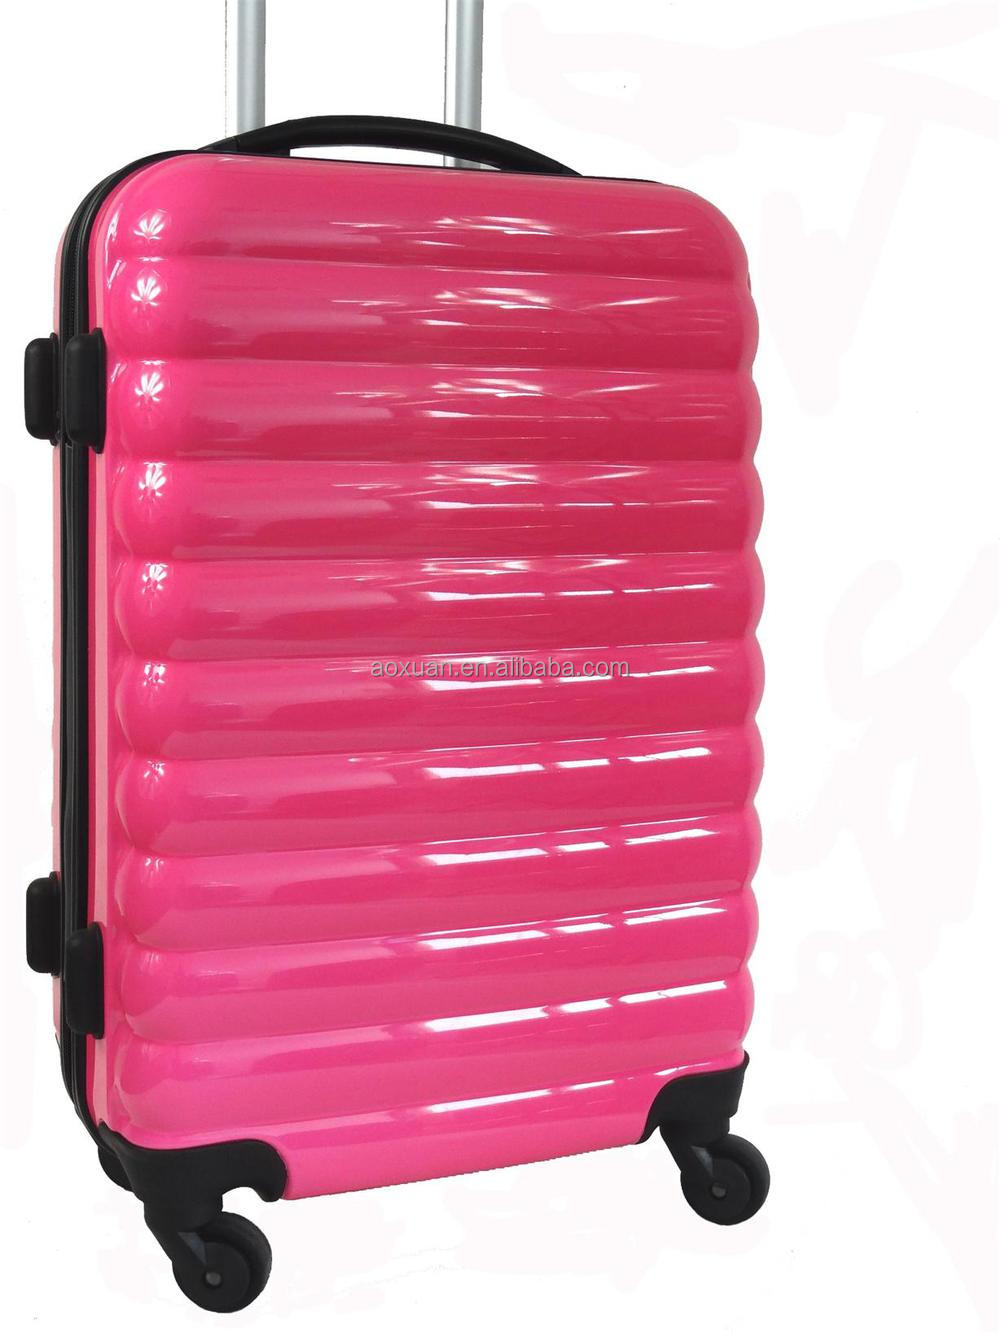 Hot Pink Luggage - Buy Pink Luggage,Hot Pink Luggage,Pc Luggage ...